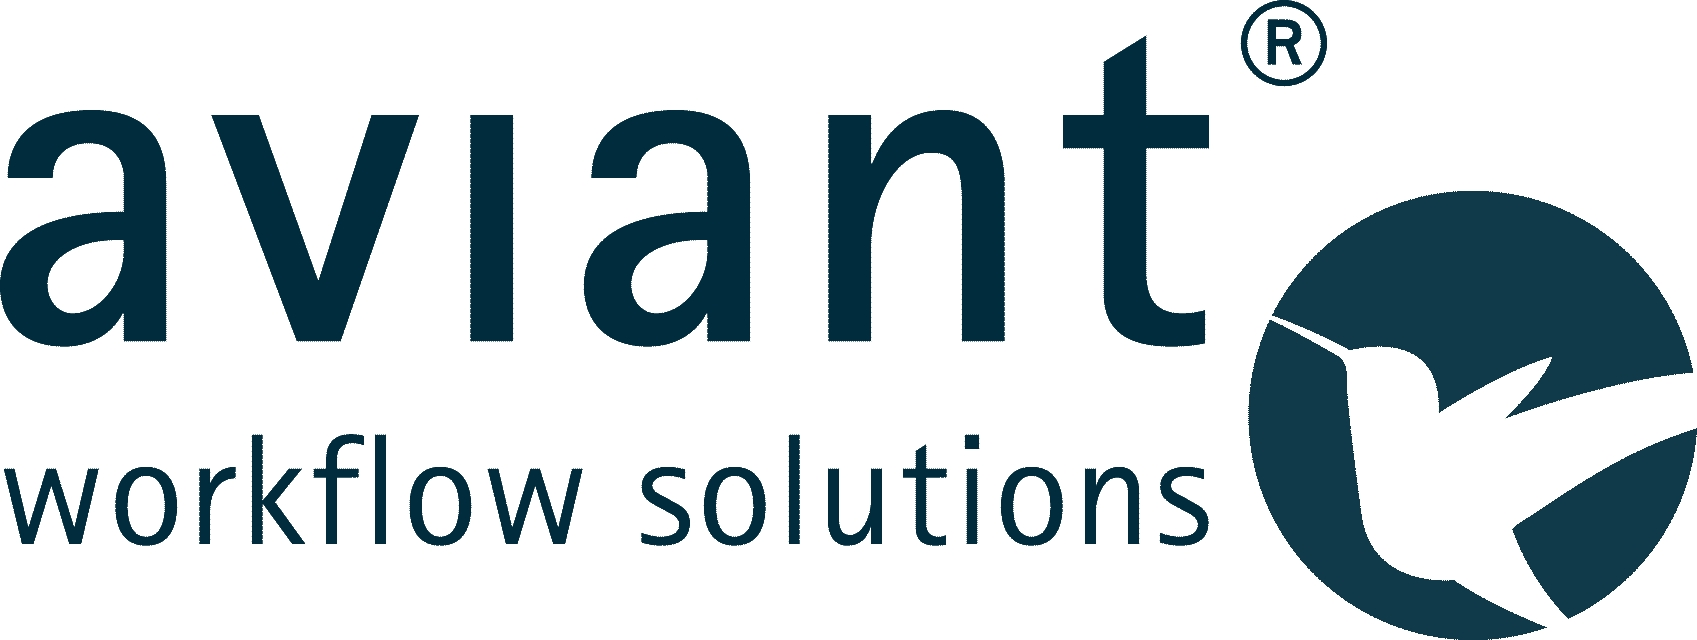 aviant_Logo_workflow solution_blau-jpg